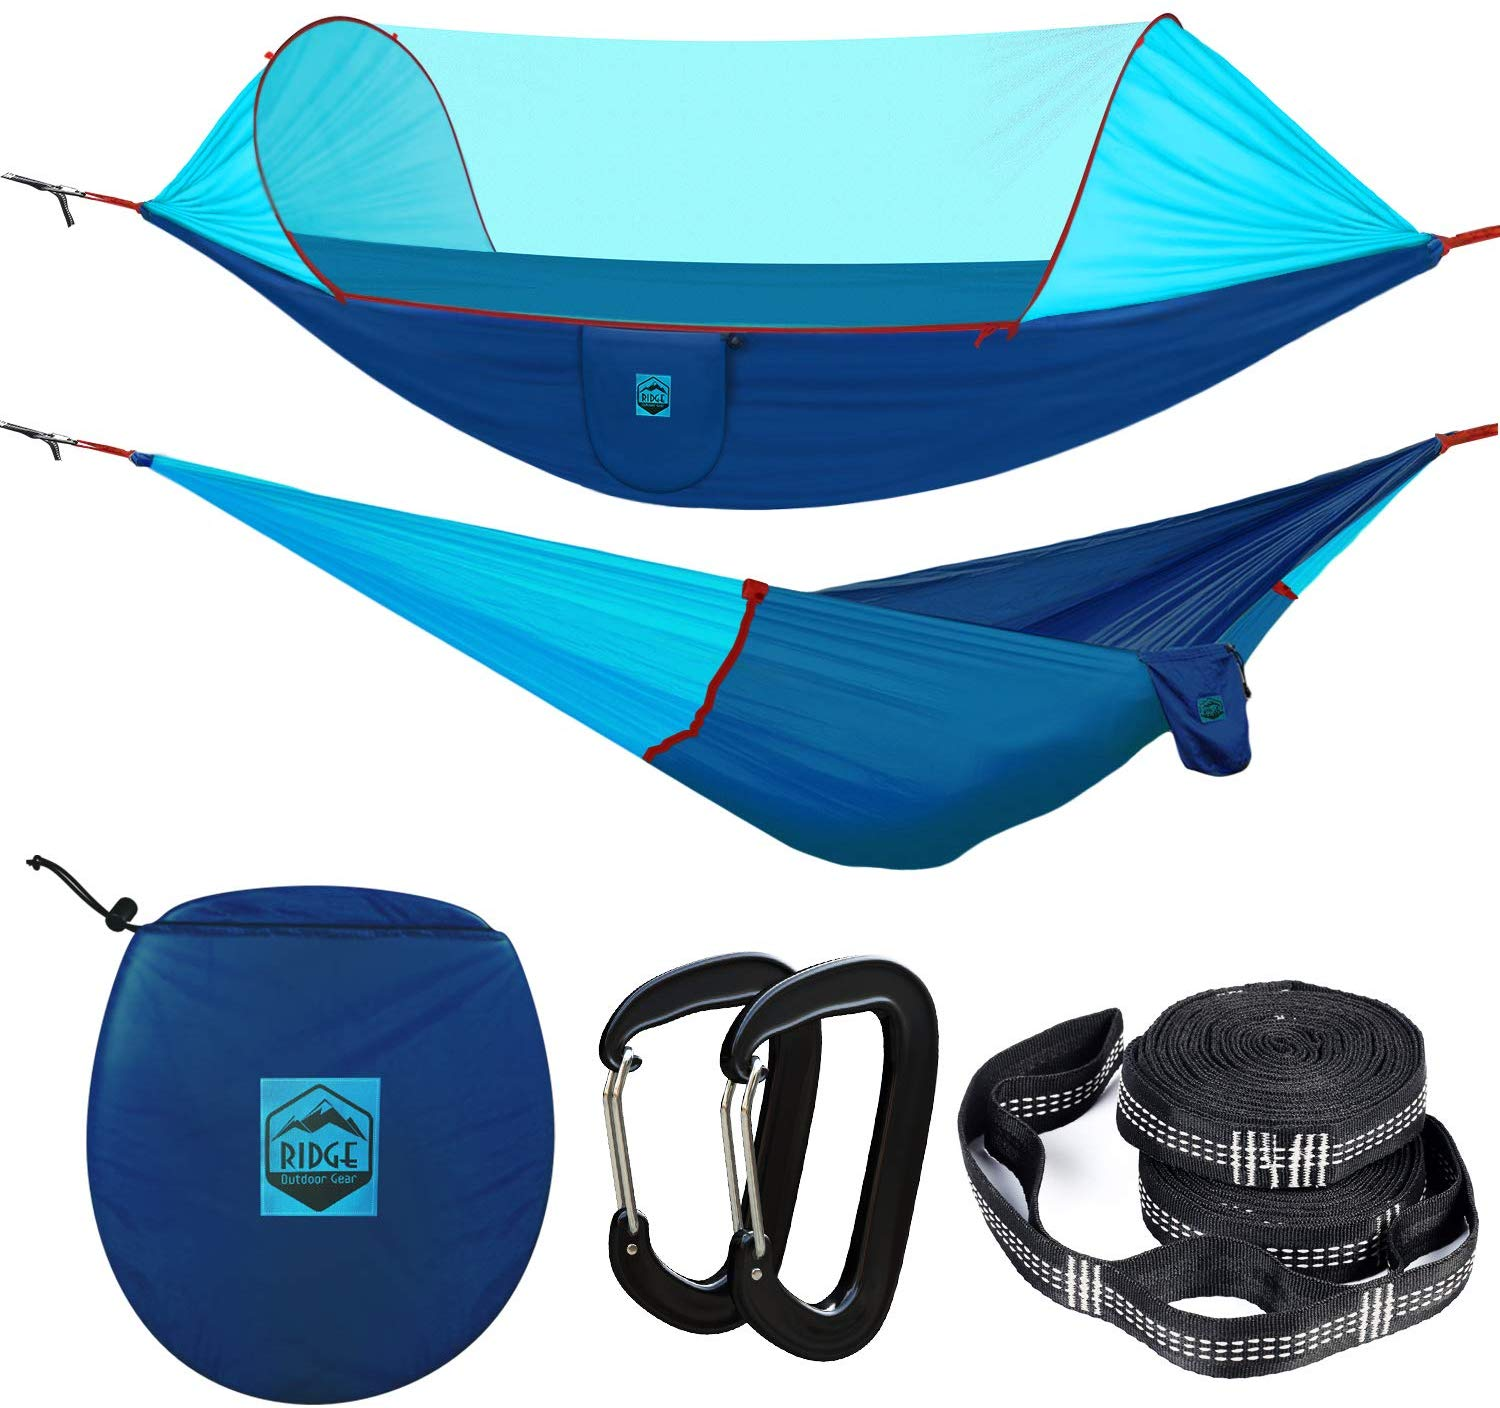 Ridge Outdoor Gear Hammock Tent